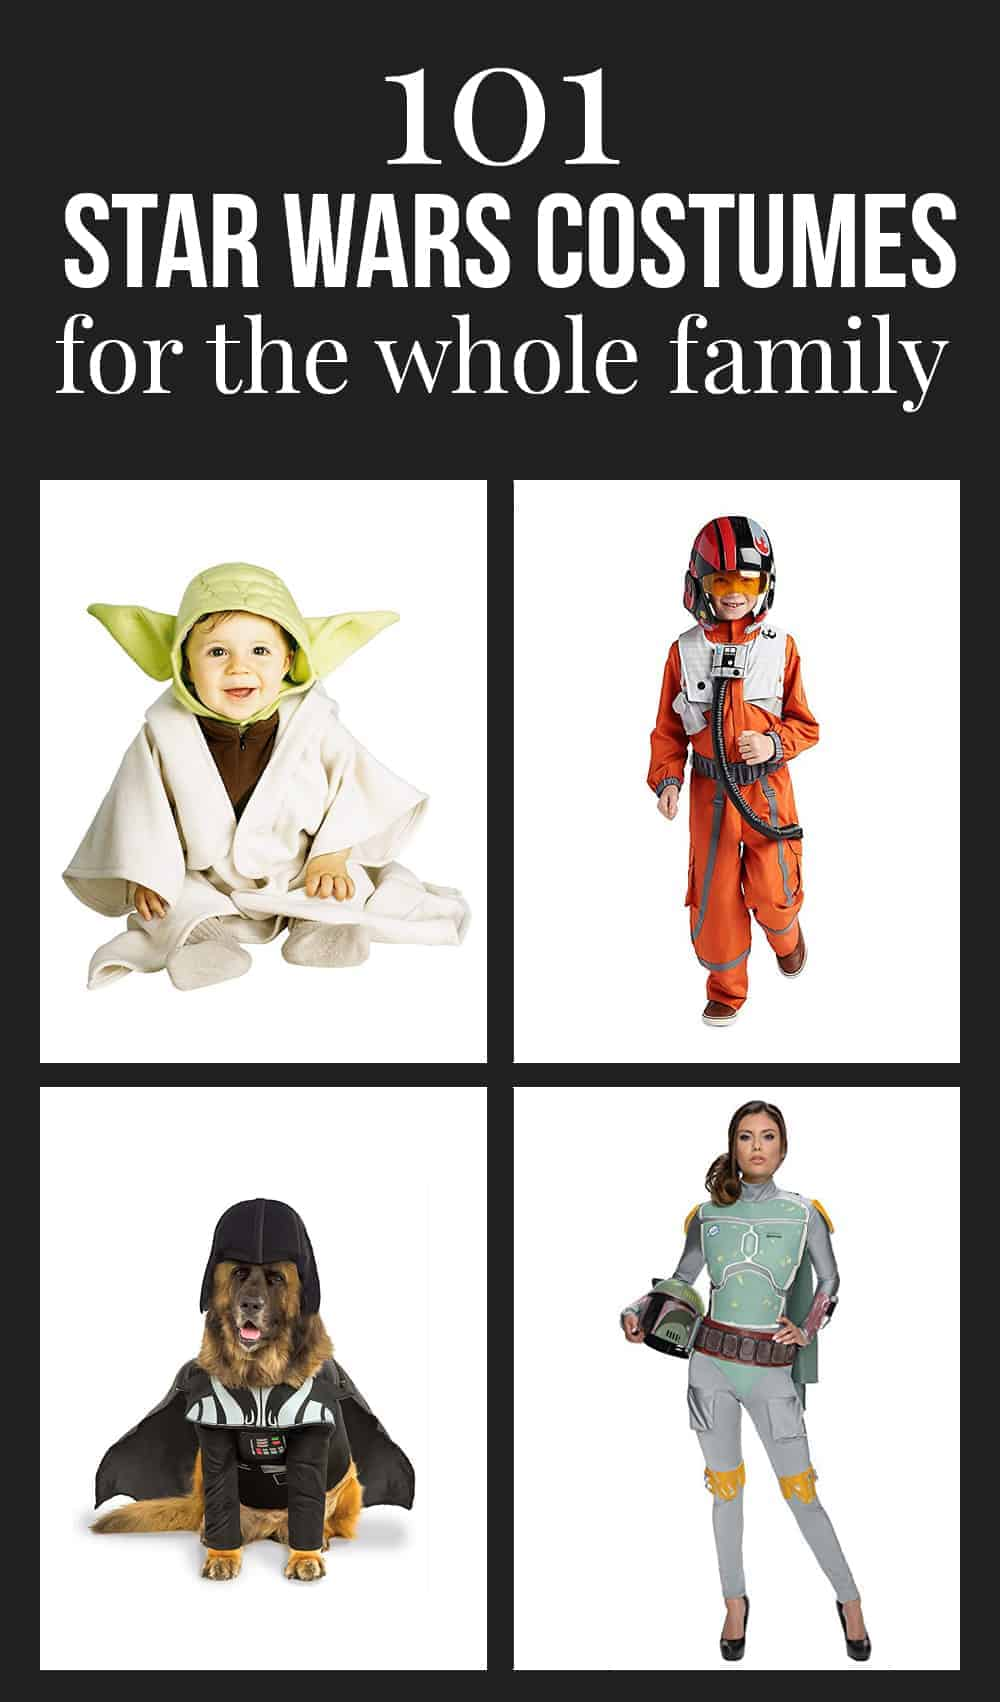 101 Star Wars costumes for the family